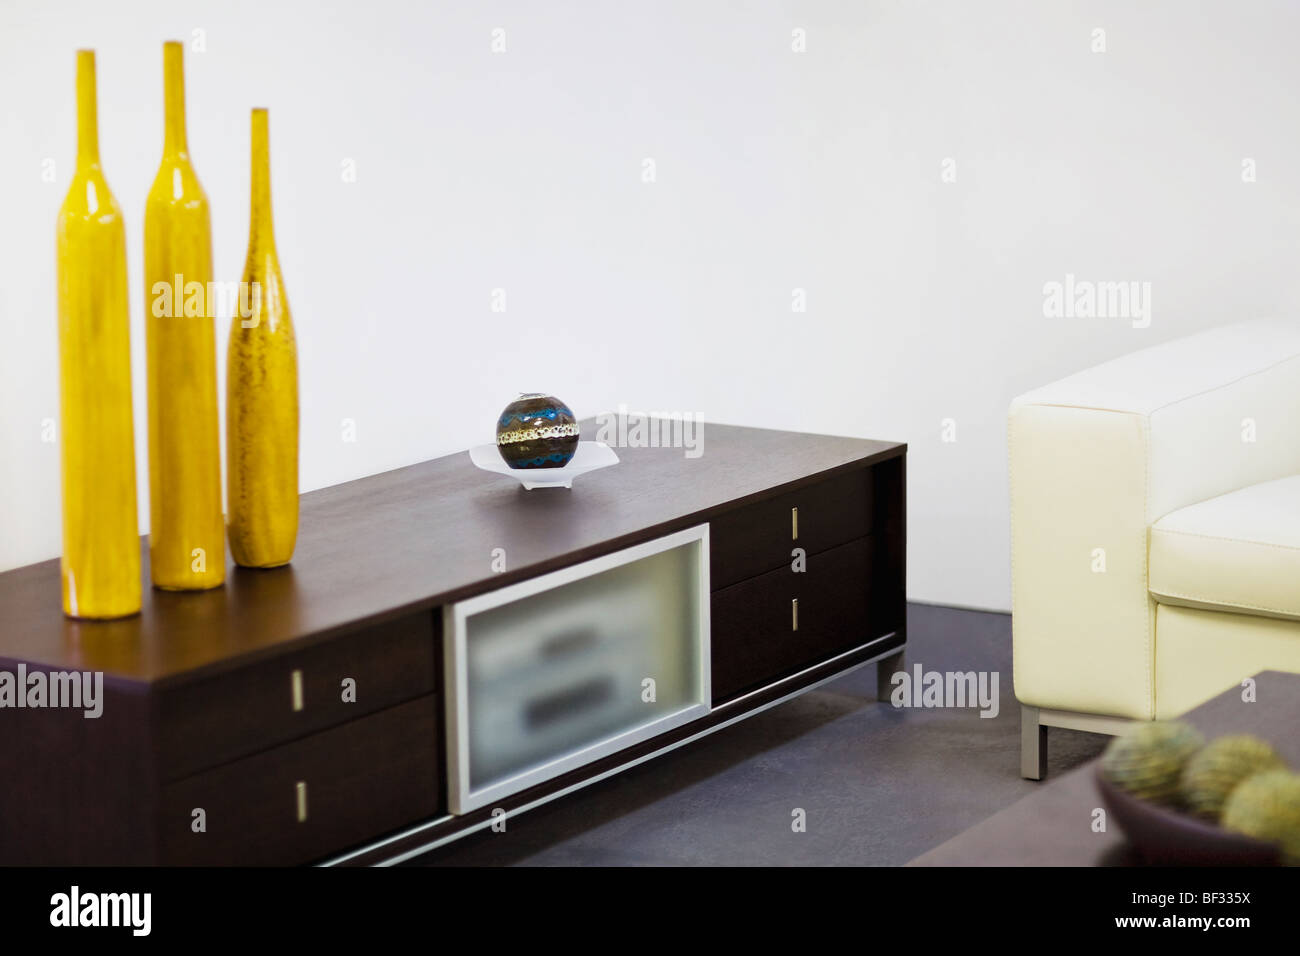 Showpieces on a drawer in a living room Stock Photo: 26498582 - Alamy